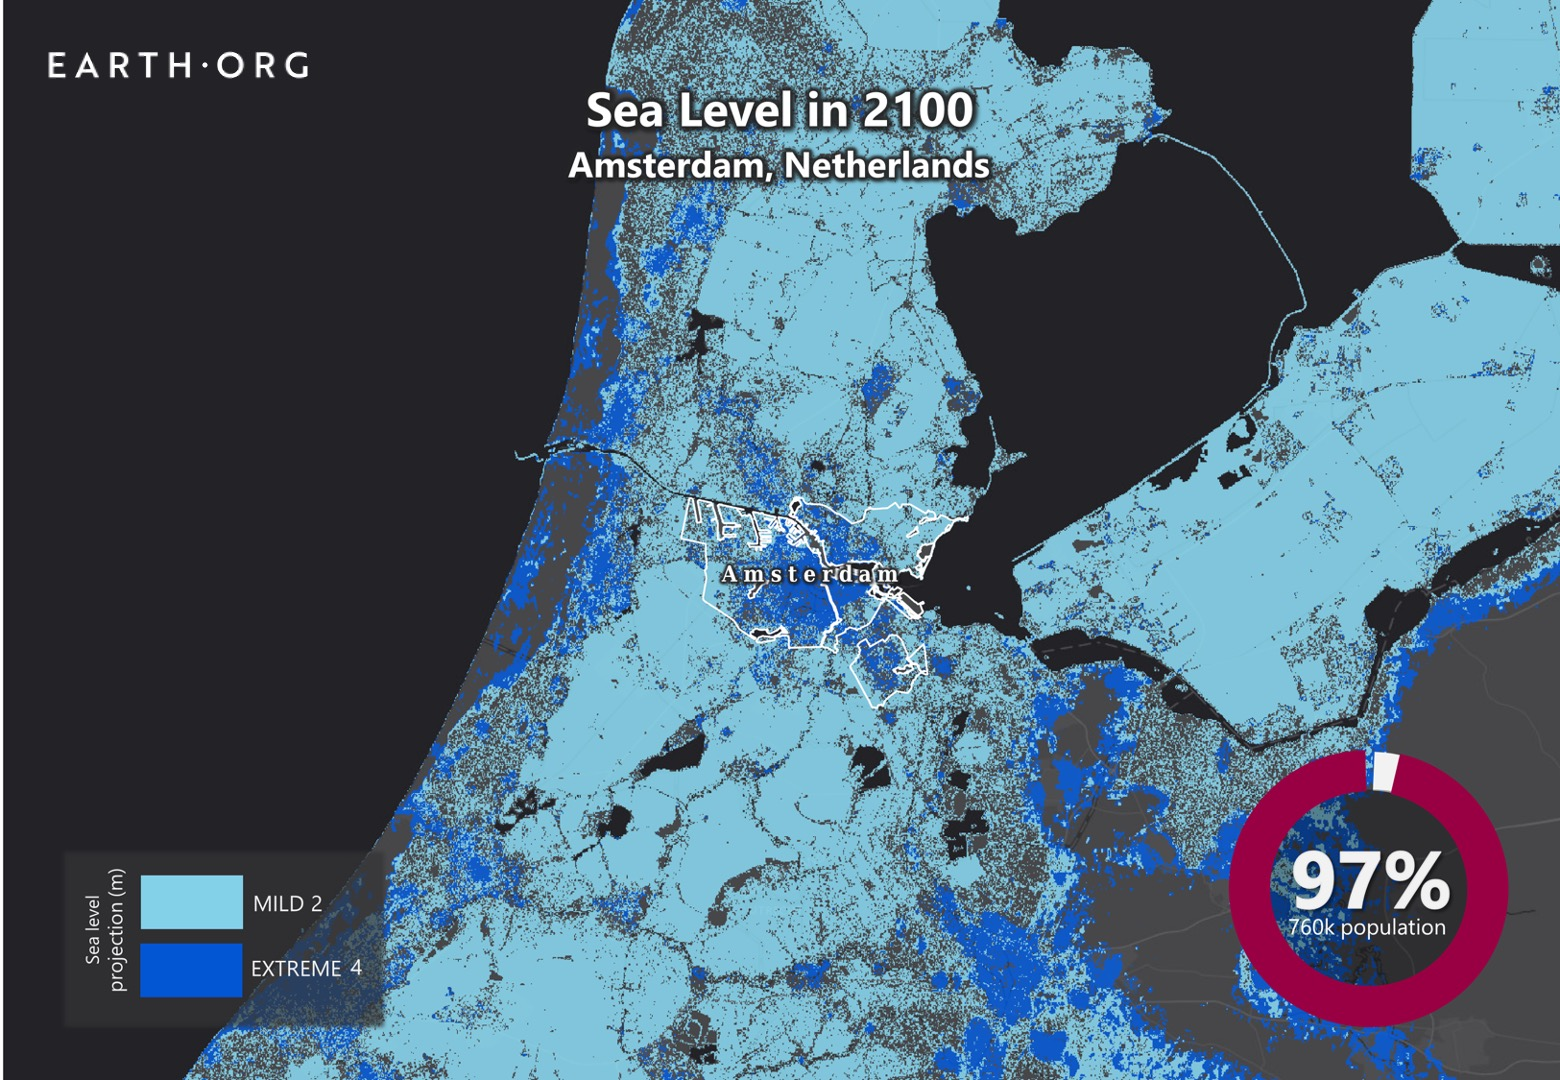 sea level rise by 2100 amsterdam